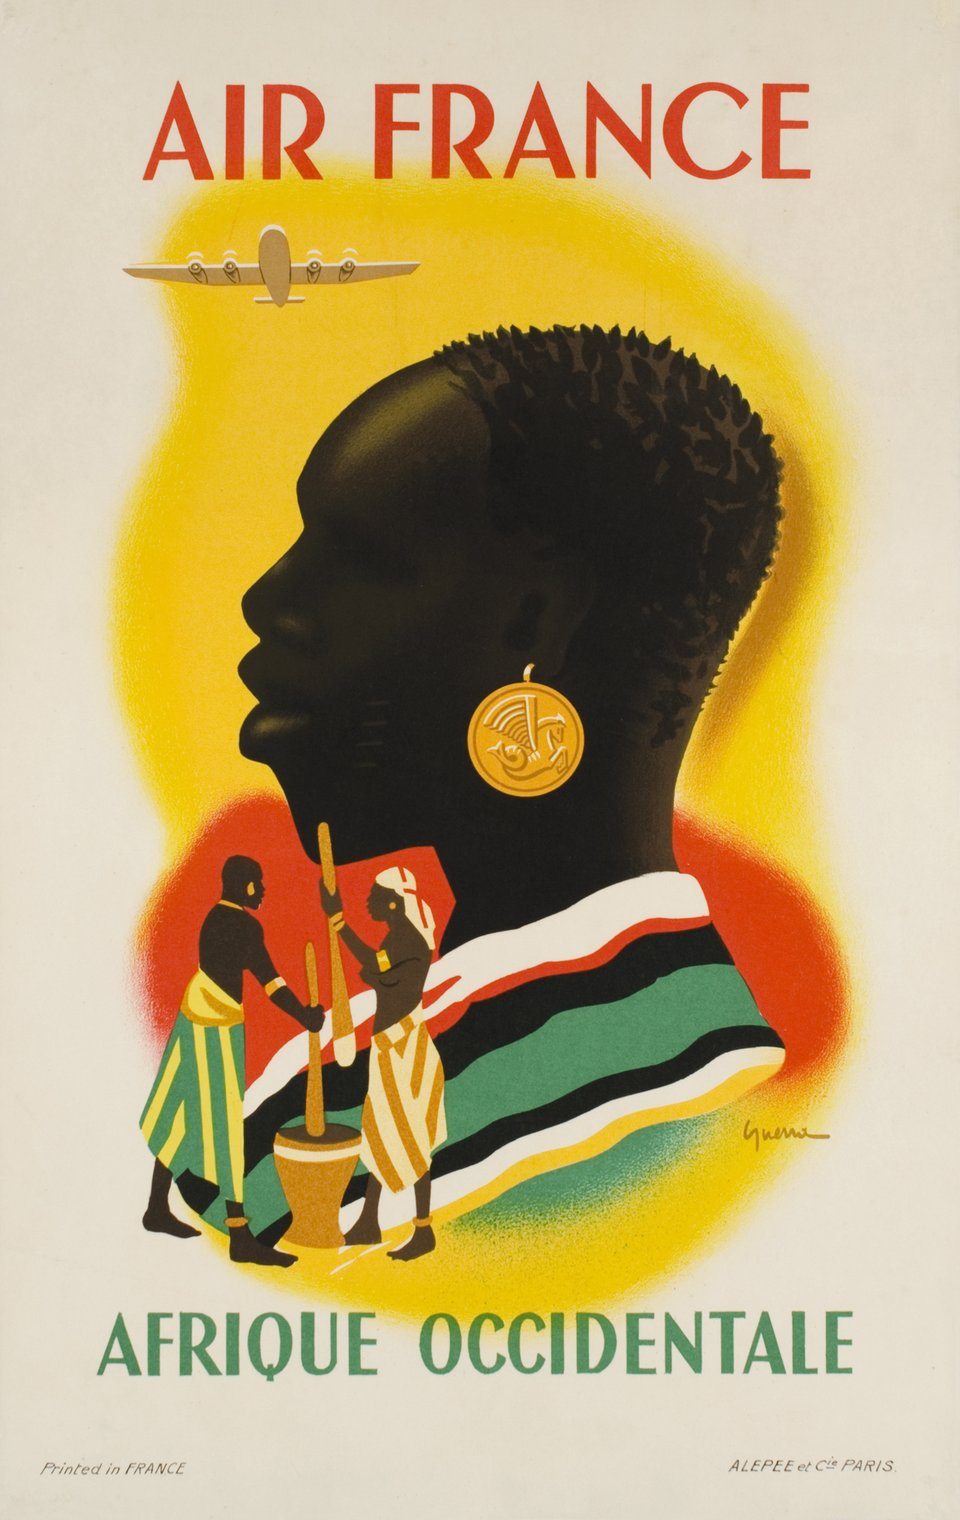 Air France, Afrique Occidentale – Affiche ancienne – Vincent GUERRA – 1948